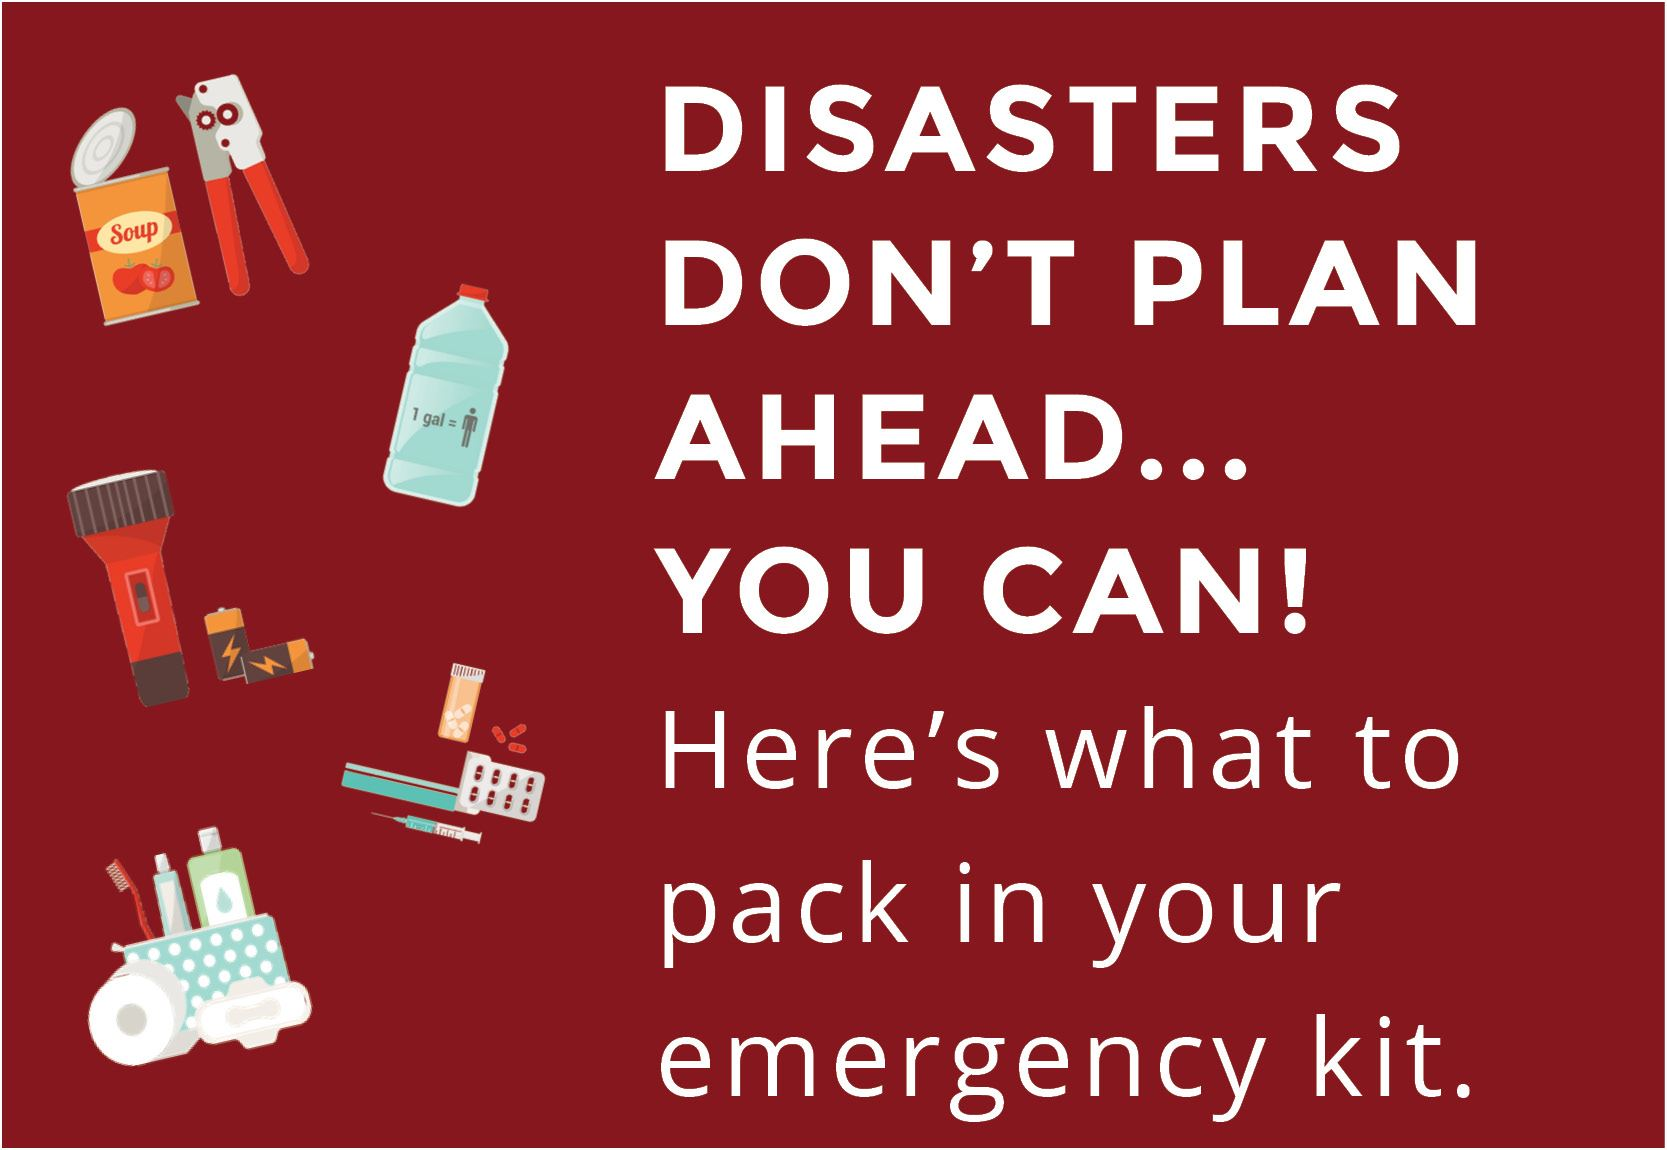 Disasters don't plan ahead... you can! here's what to pack in your emergency kit Opens in new window